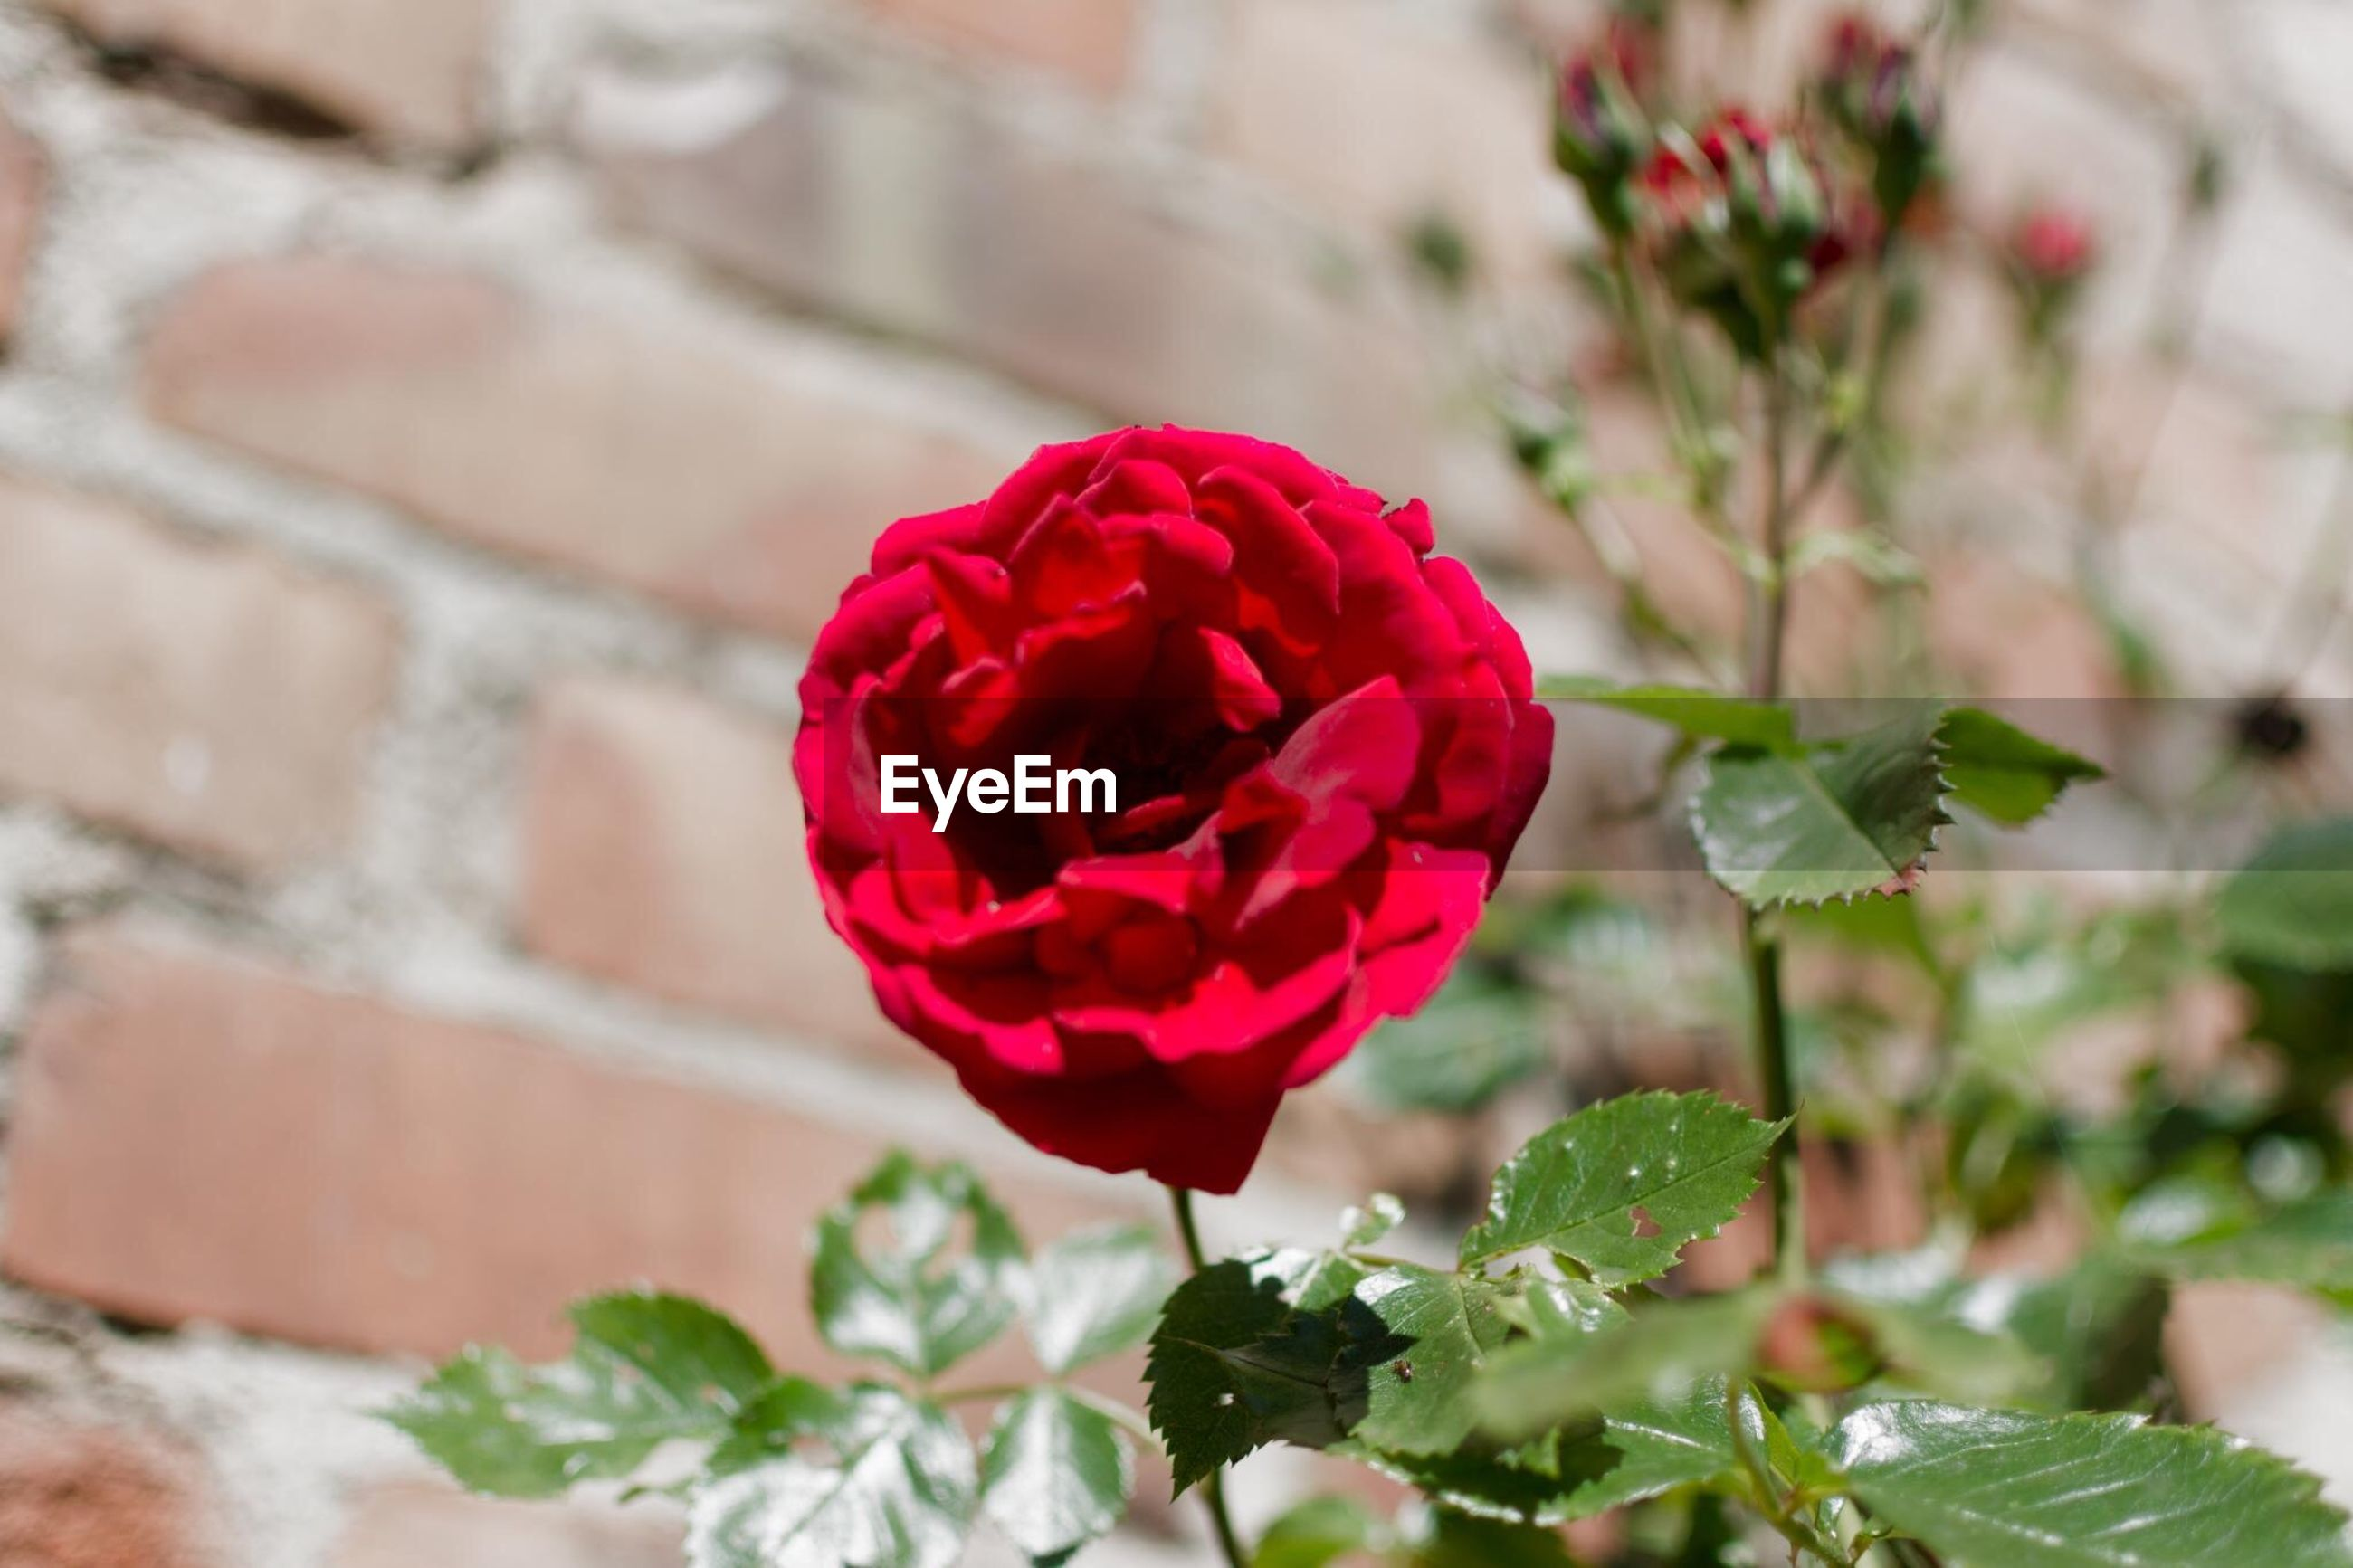 flower, freshness, petal, rose - flower, fragility, growth, flower head, close-up, plant, red, focus on foreground, leaf, beauty in nature, nature, blooming, pink color, rose, bud, single flower, day